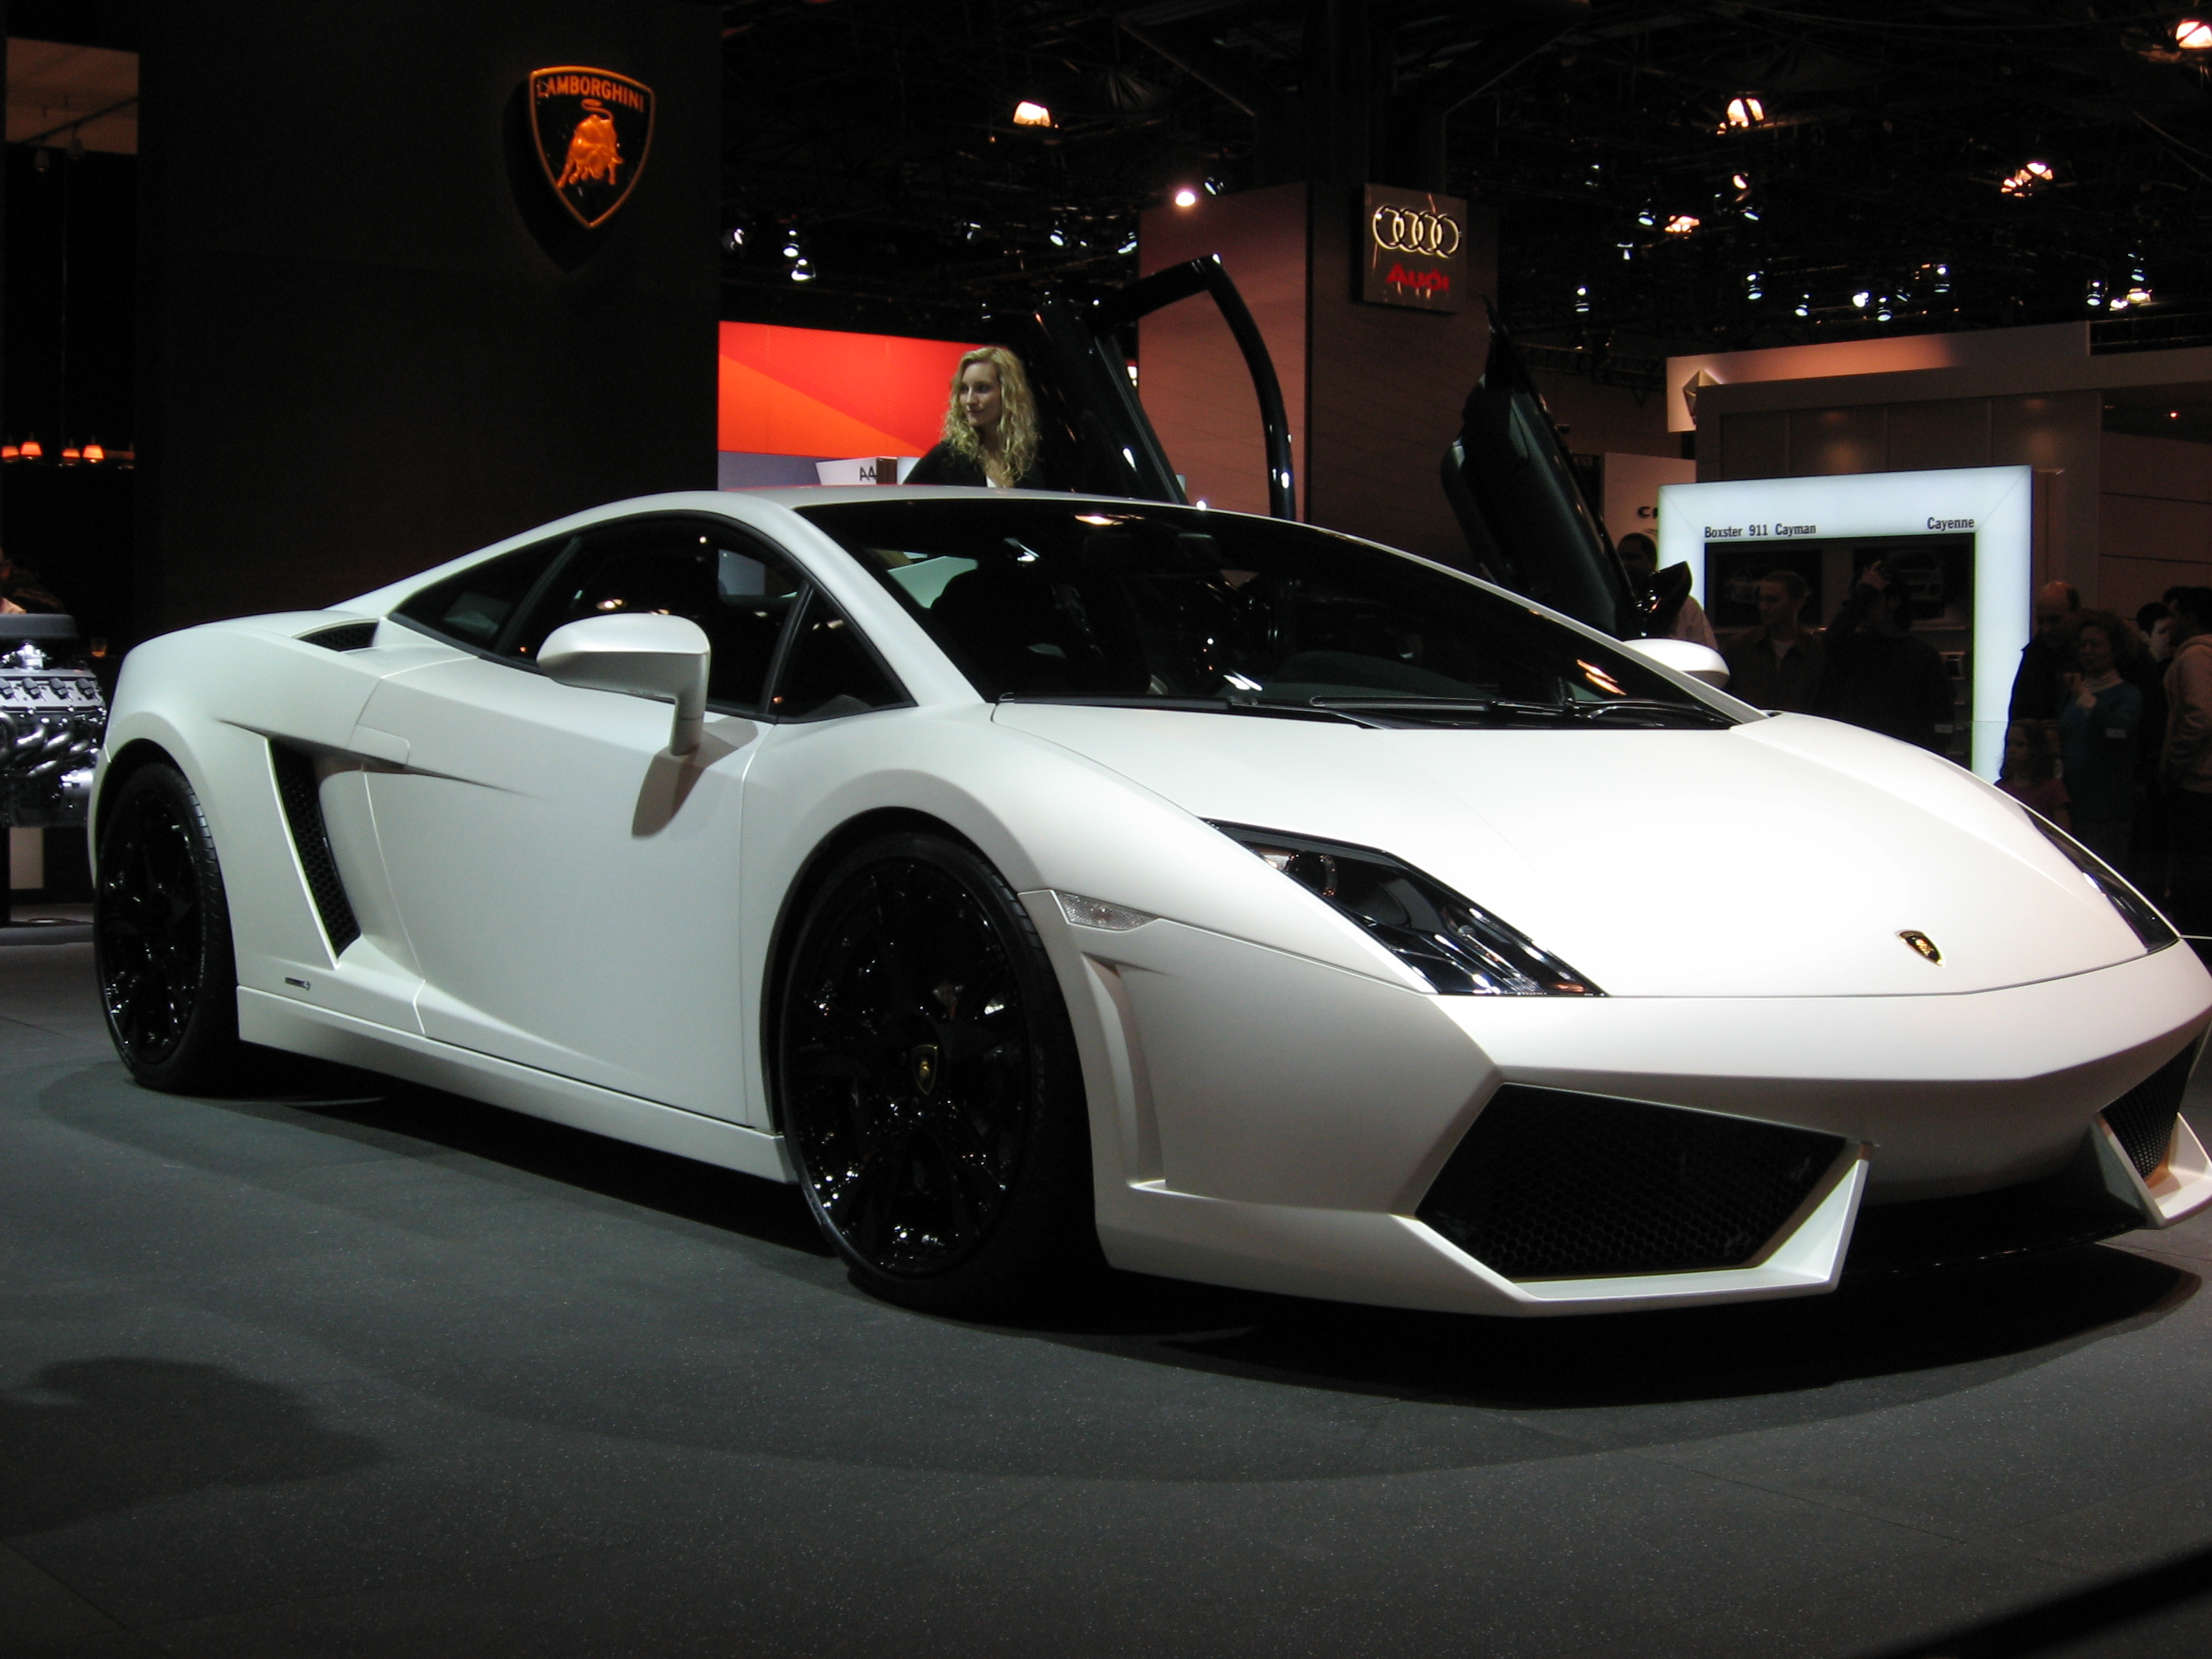 http://upload.wikimedia.org/wikipedia/commons/f/f7/Lamborghini_Gallardo_LP560-4_%28Front-Right%29.jpg